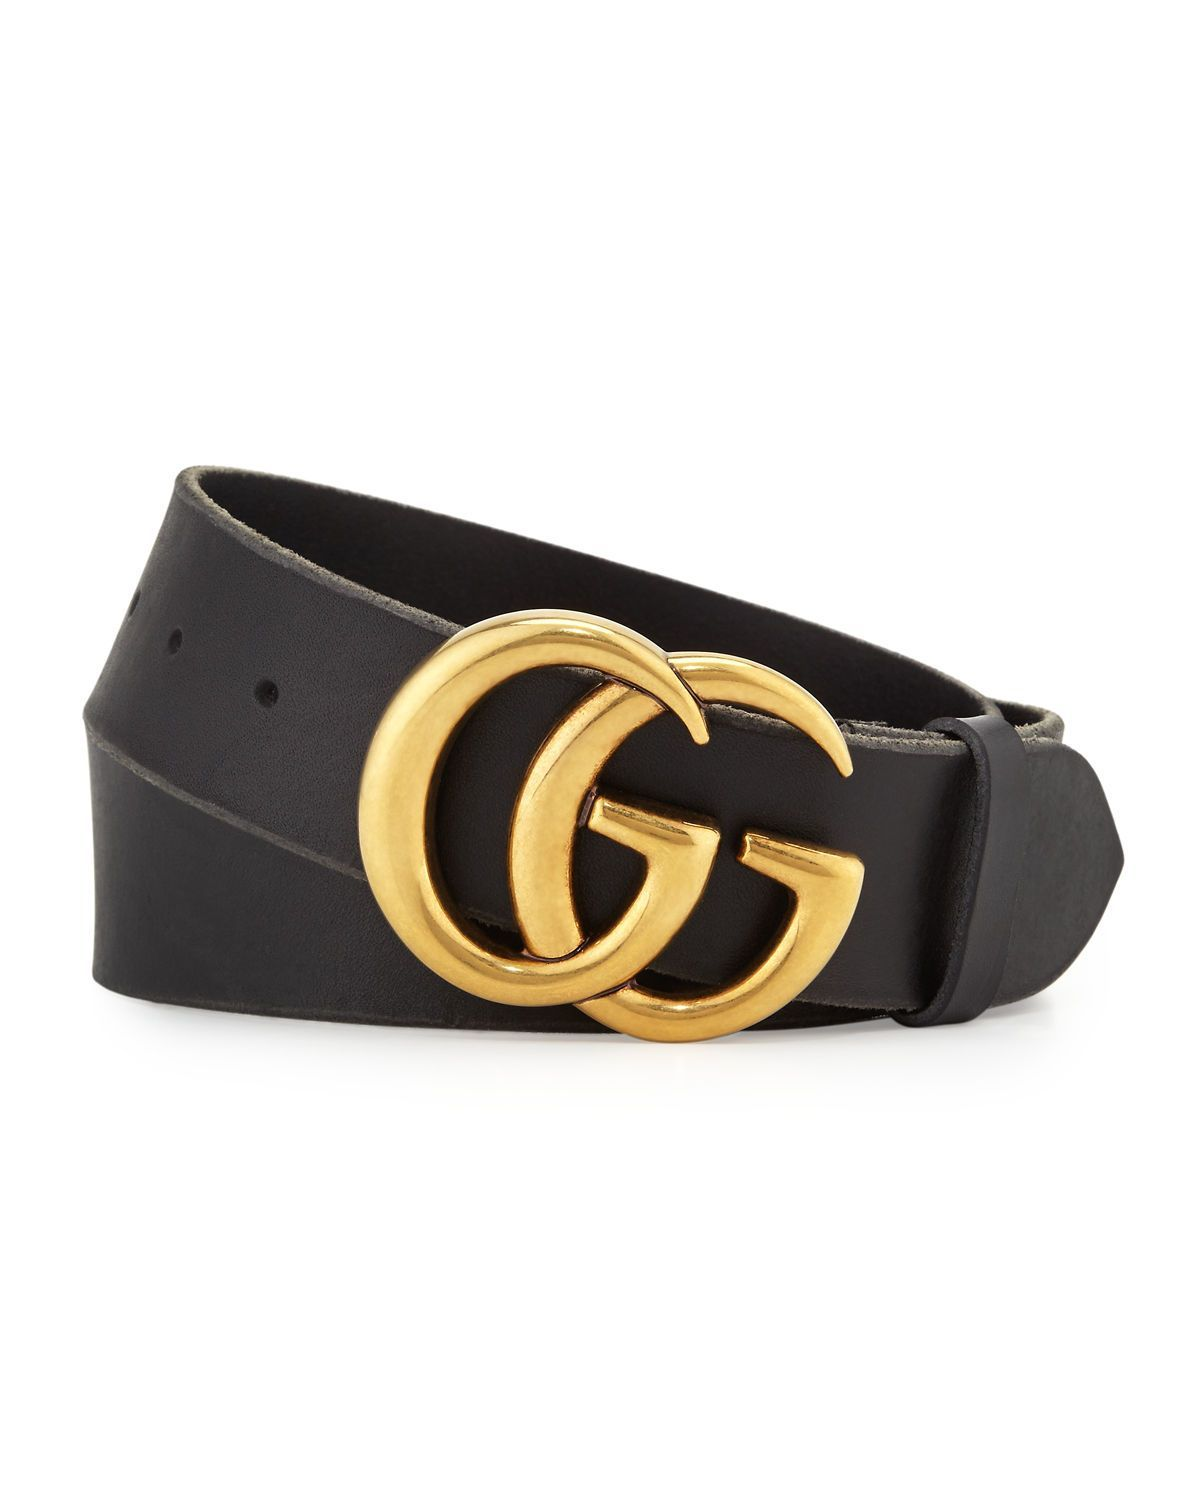 78a98b5db07 Smooth leather Gucci belt with double-G buckle. Brass hardware. 1.5